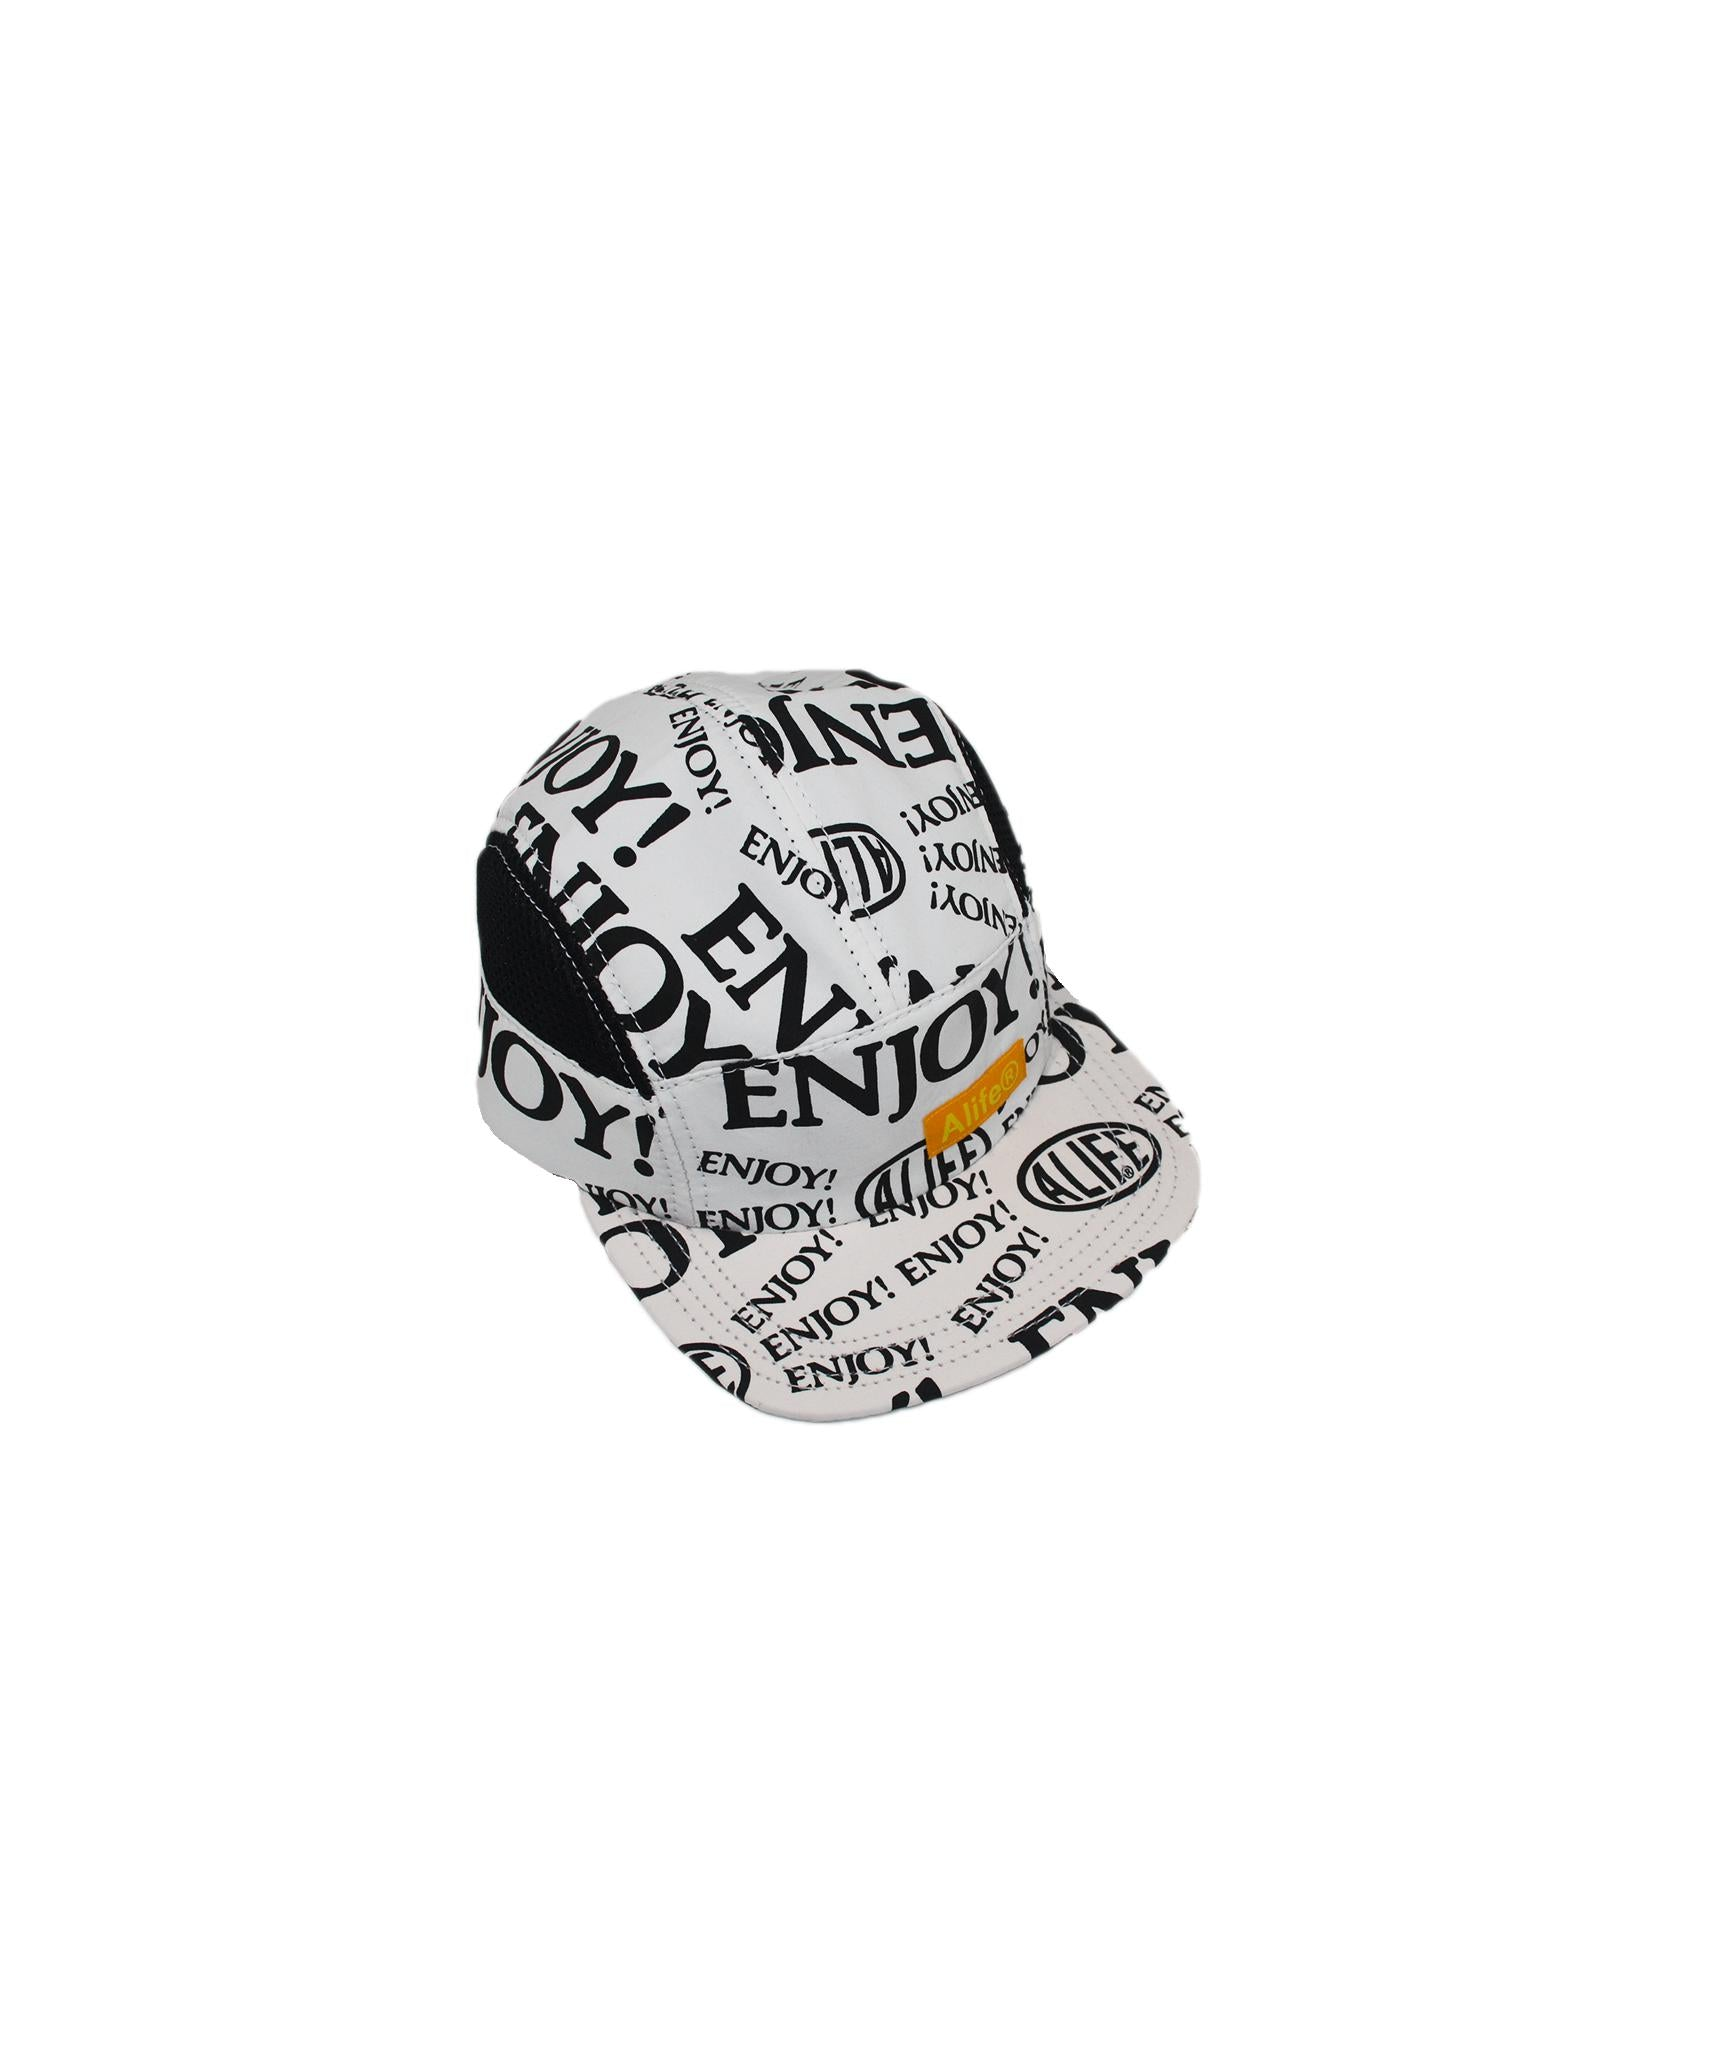 Alife Upcycle Hat - Enjoy! Capsule - White/Black/Yellow